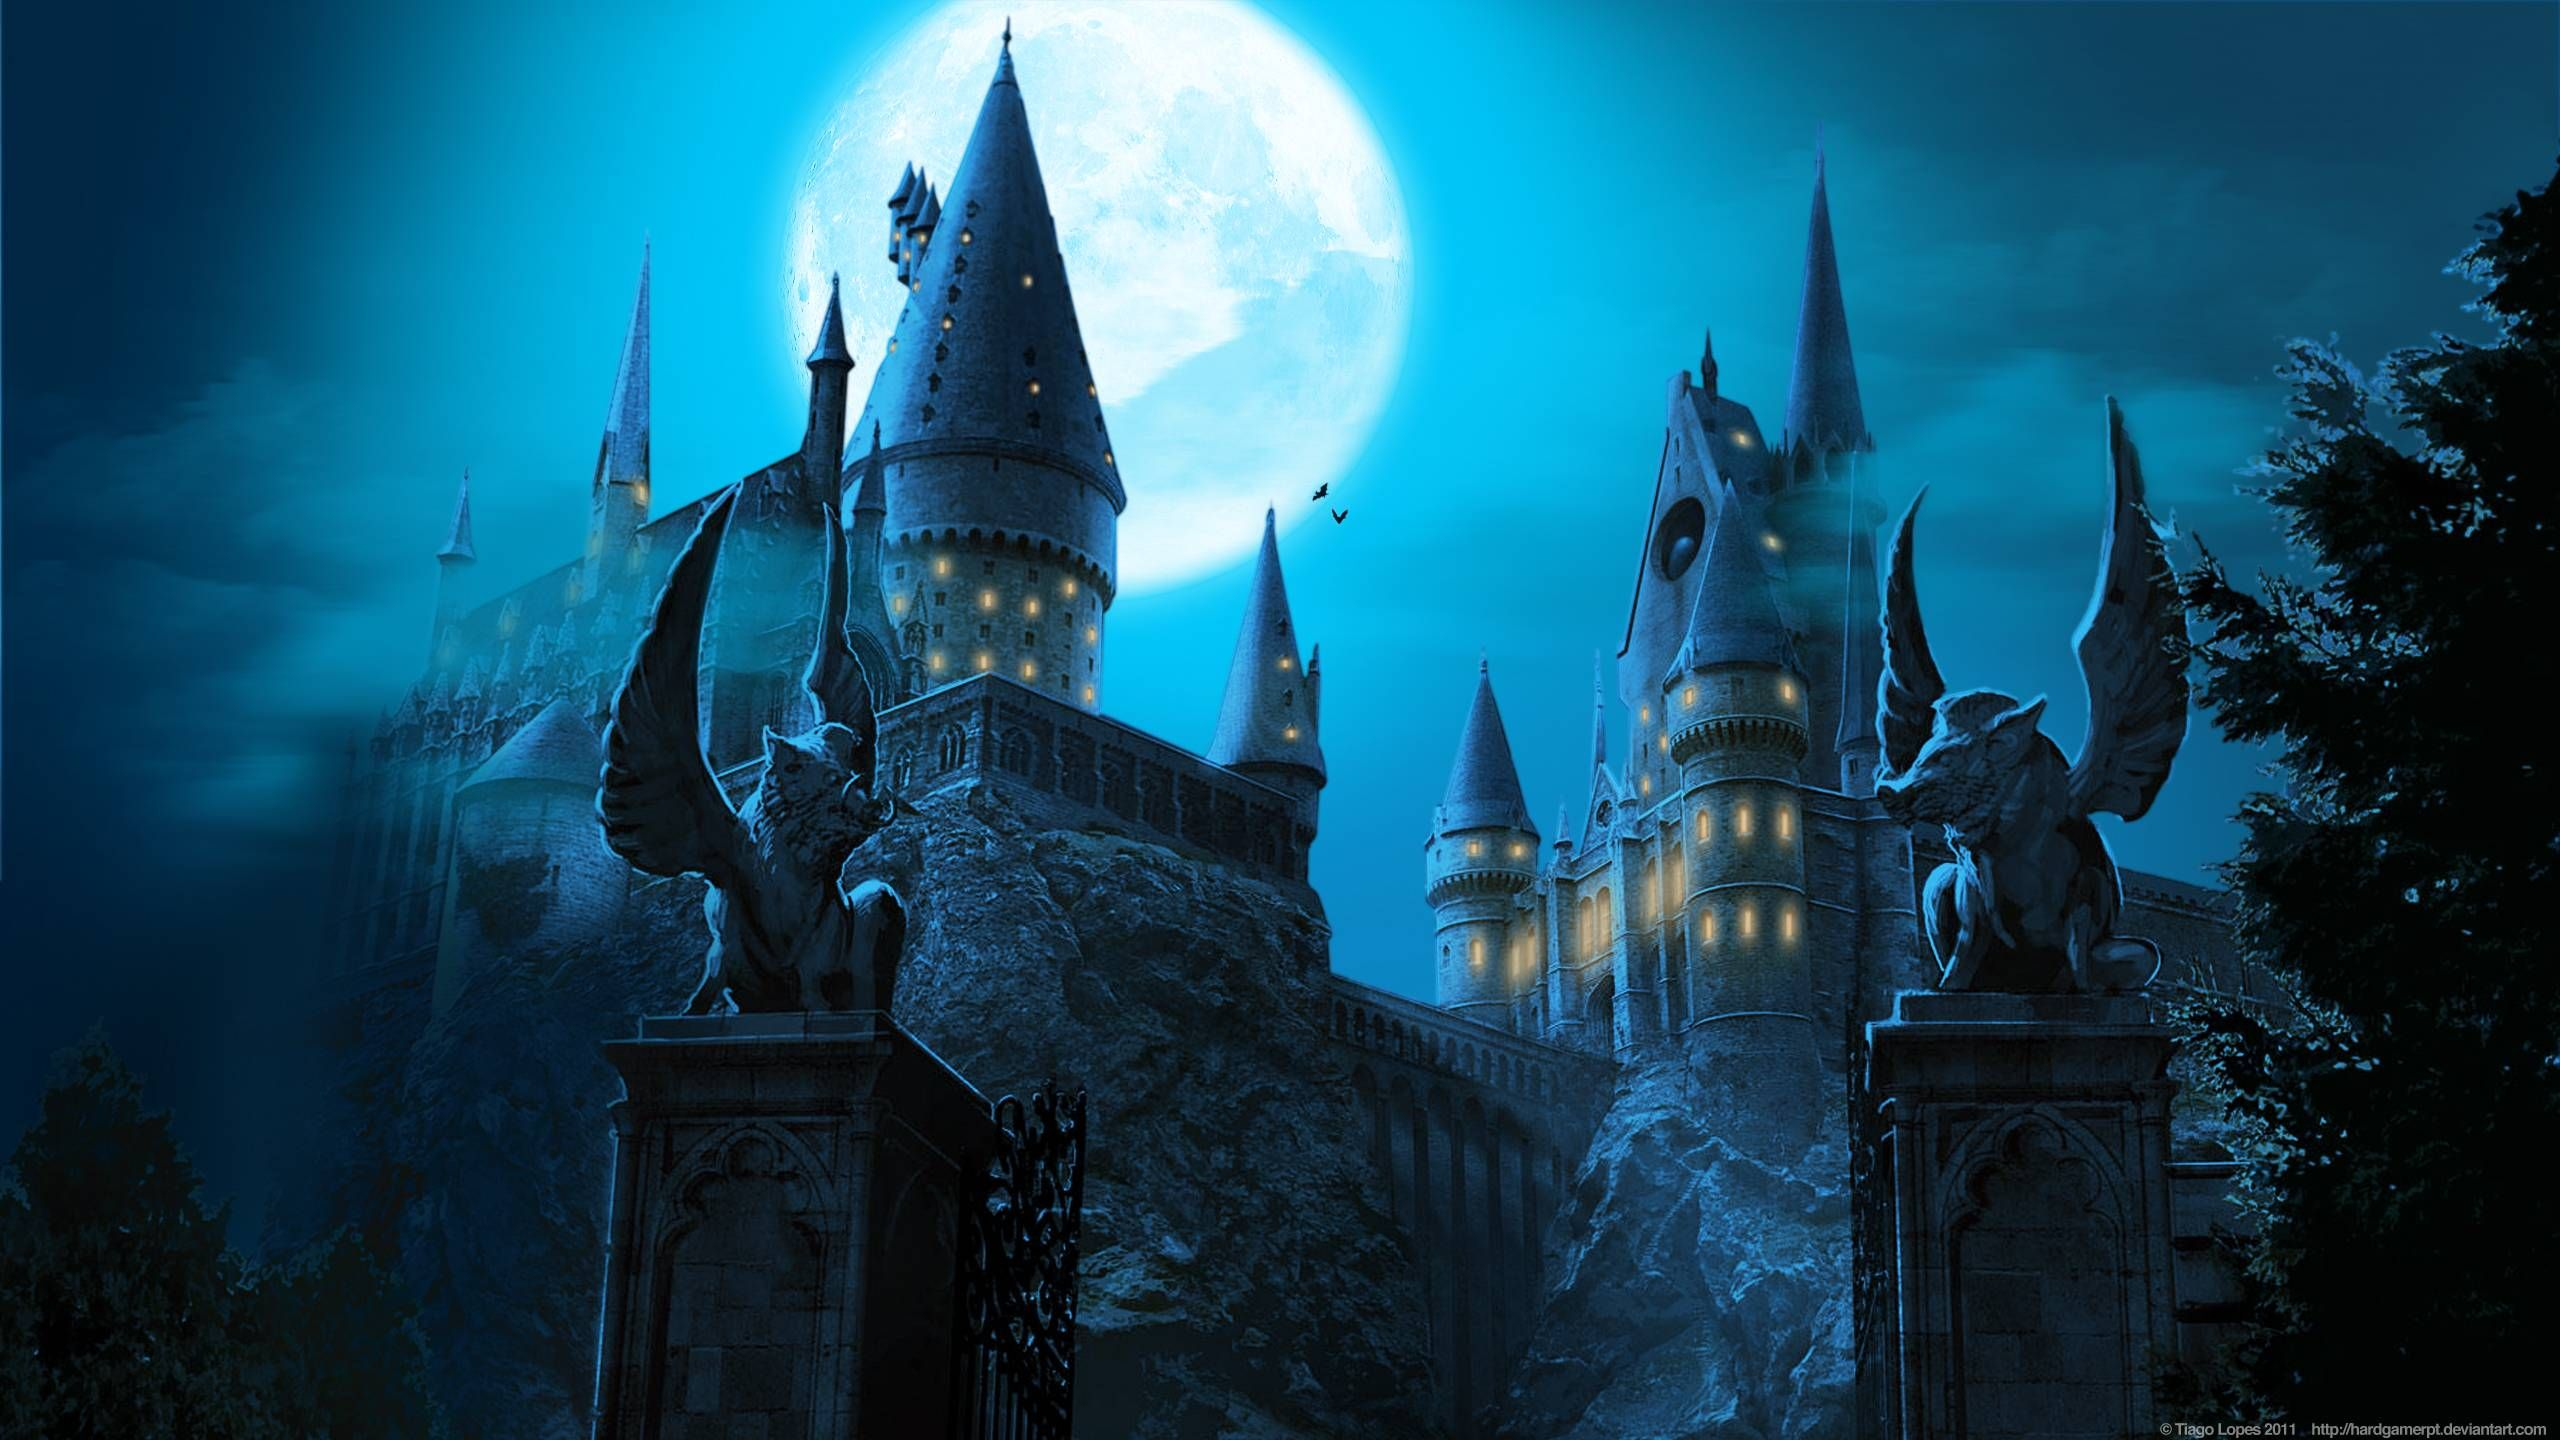 Hogwarts Wallpapers Free Hogwarts Castle Harry Potter Wallpaper Harry Potter Hogwarts Castle